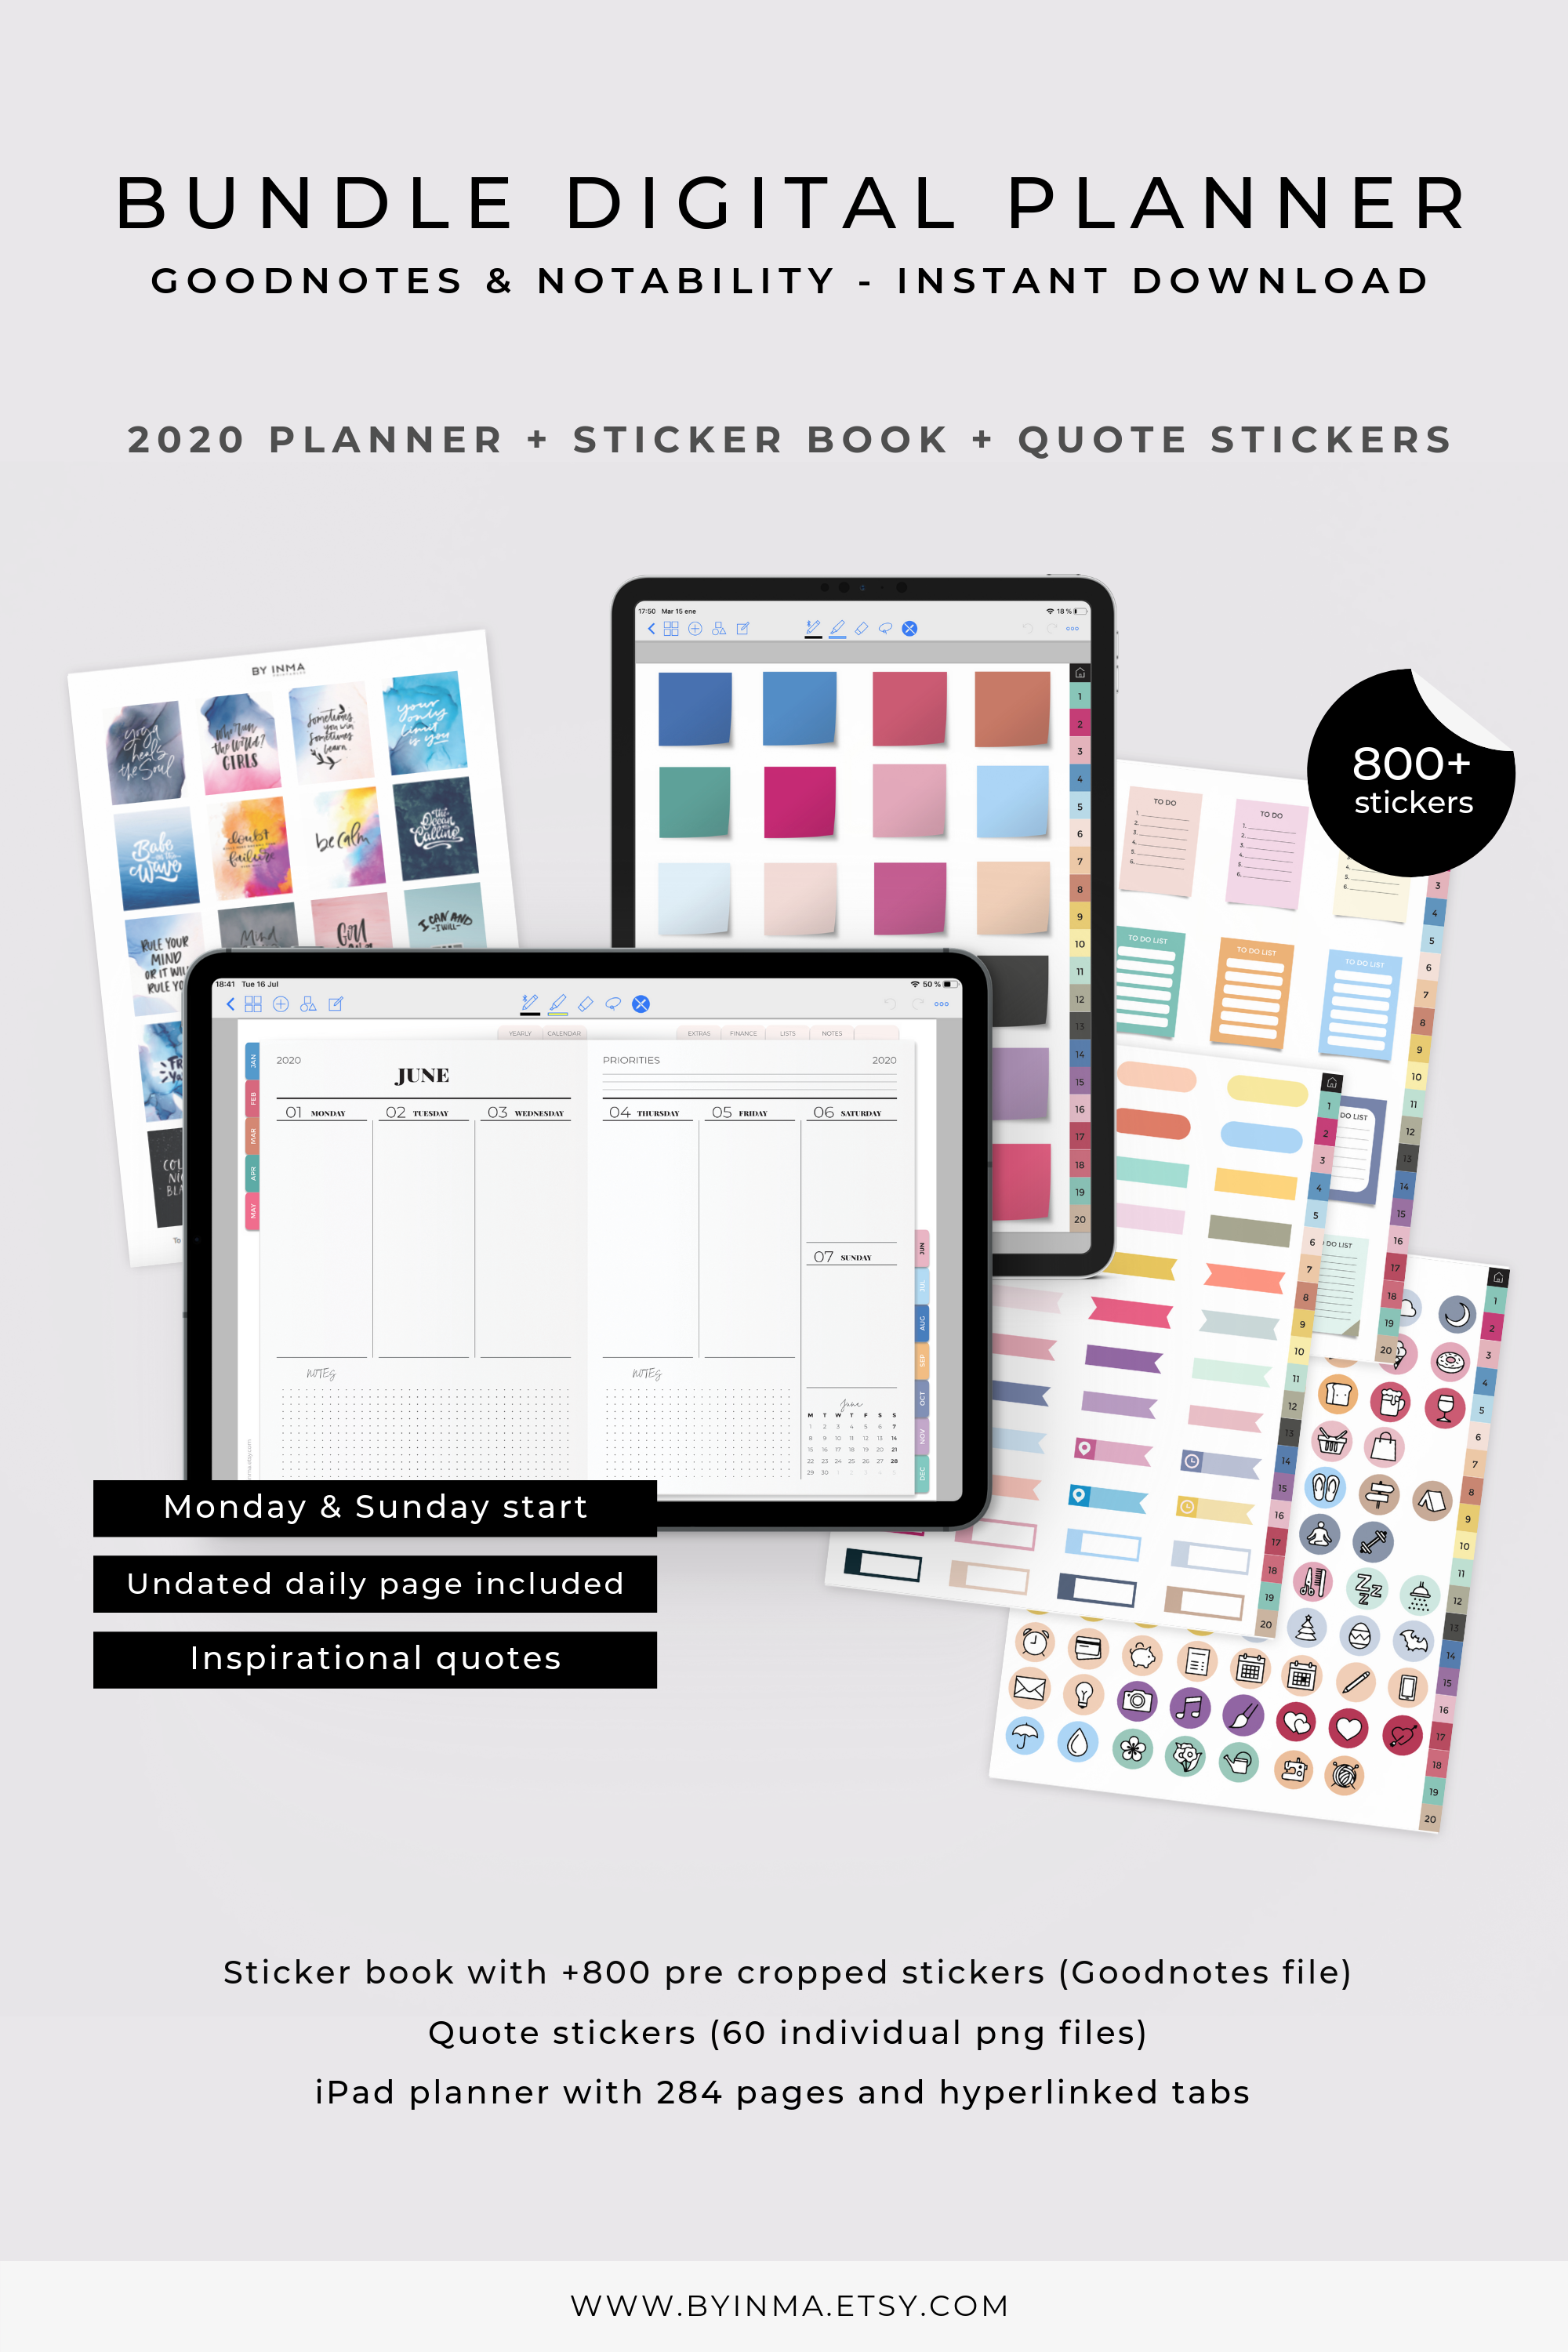 Digital Planner 2021 Goodnotes Digital Stickers Book Pre Cropped Png Quote Stickers Png Notability Planner Ipad Hyperlinks Tabs Planner Sticker Book Digital Planner Sticker Book